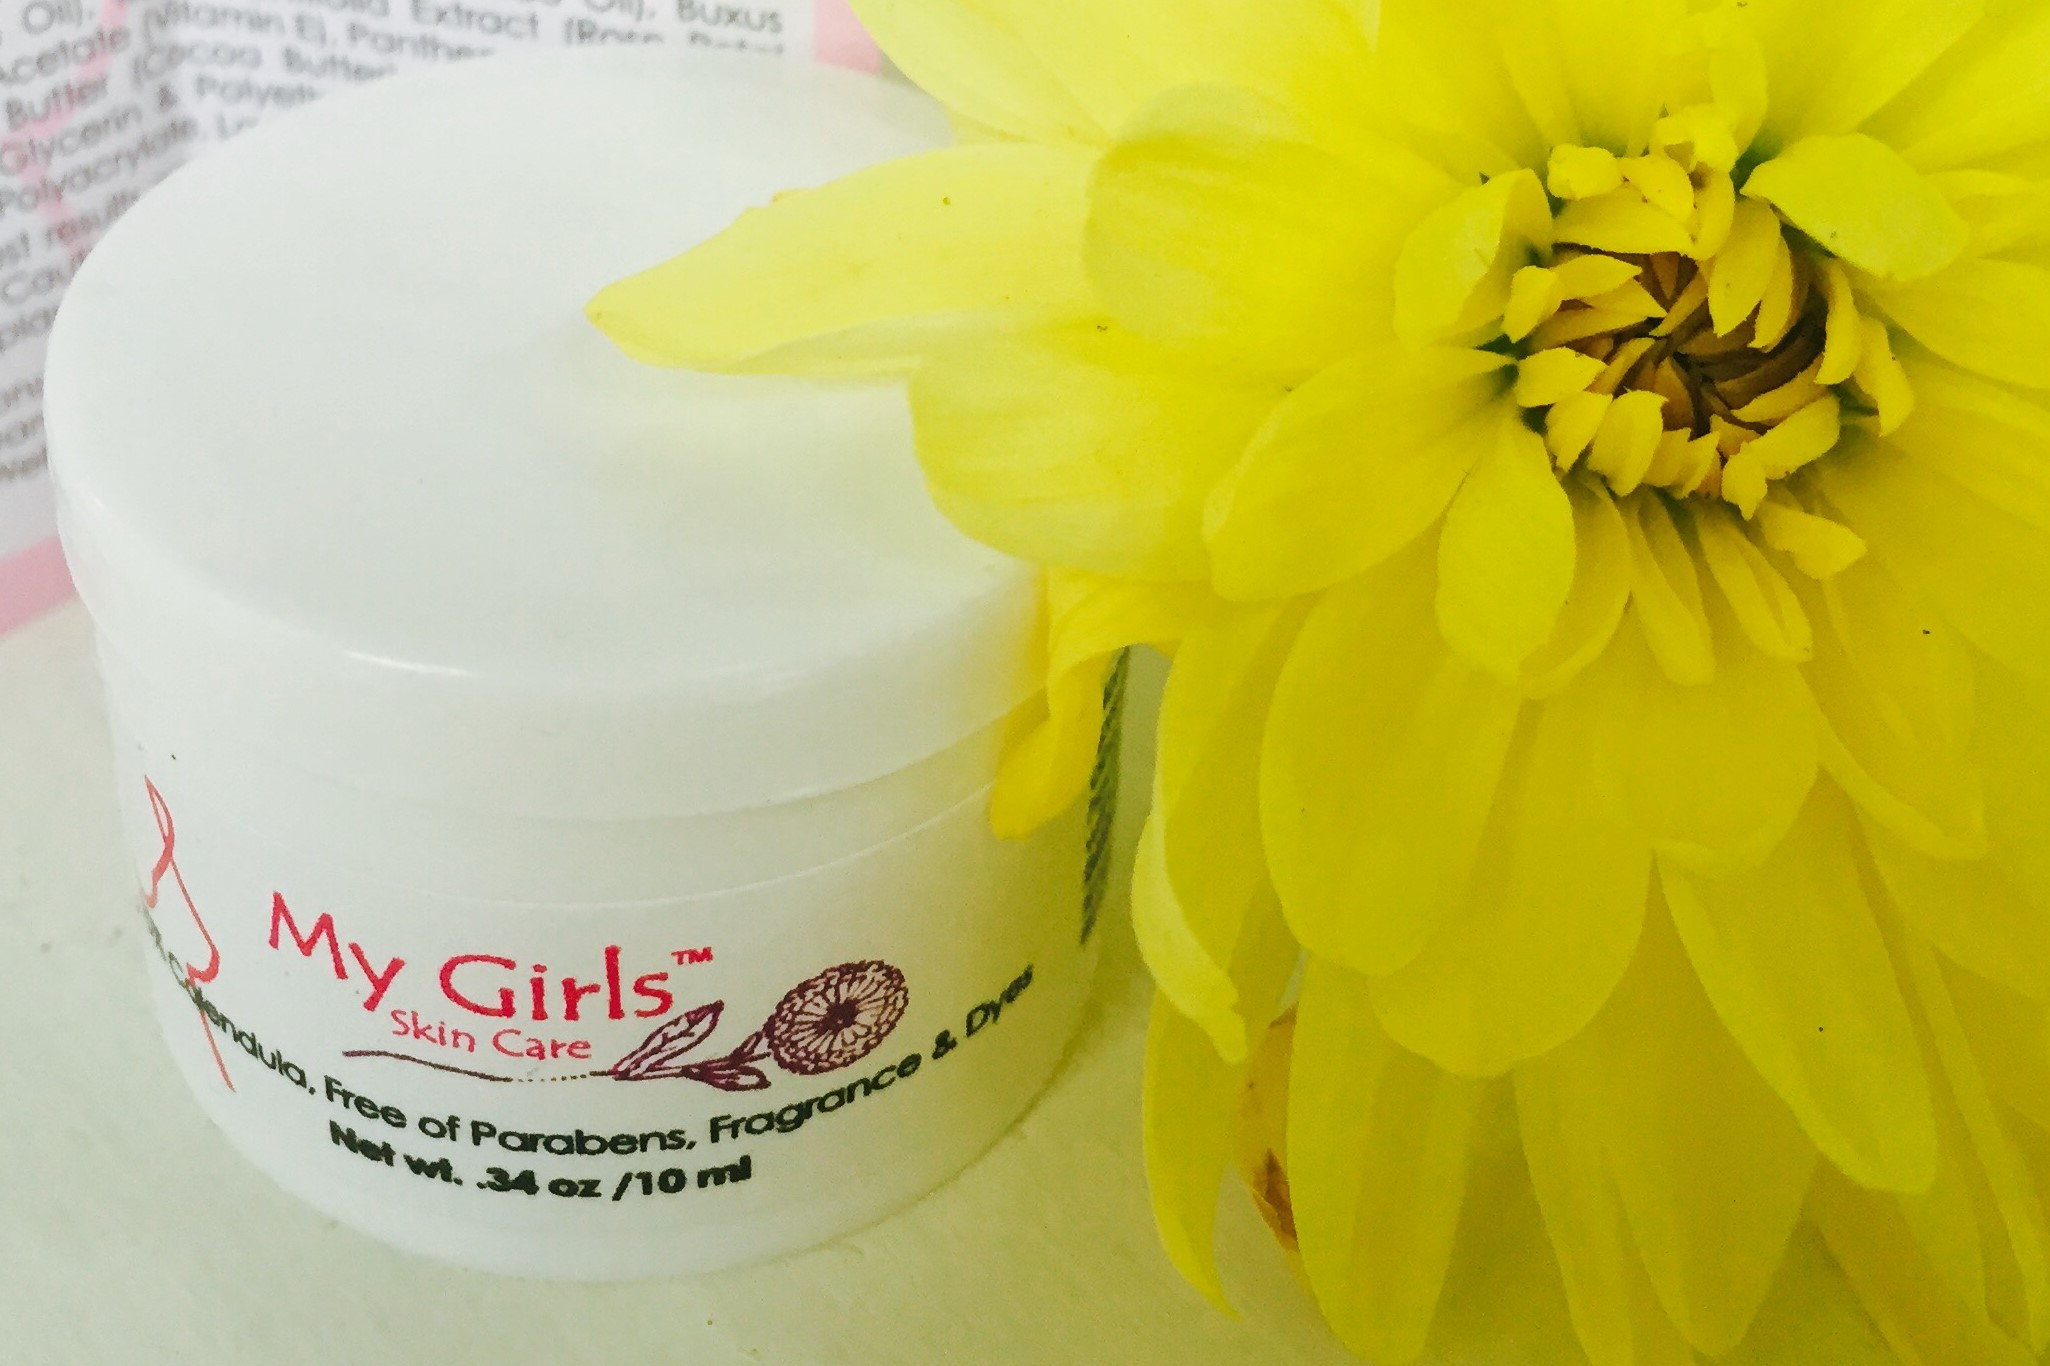 My Girls Skin Care cream samples - FREE for radiation oncology nurses